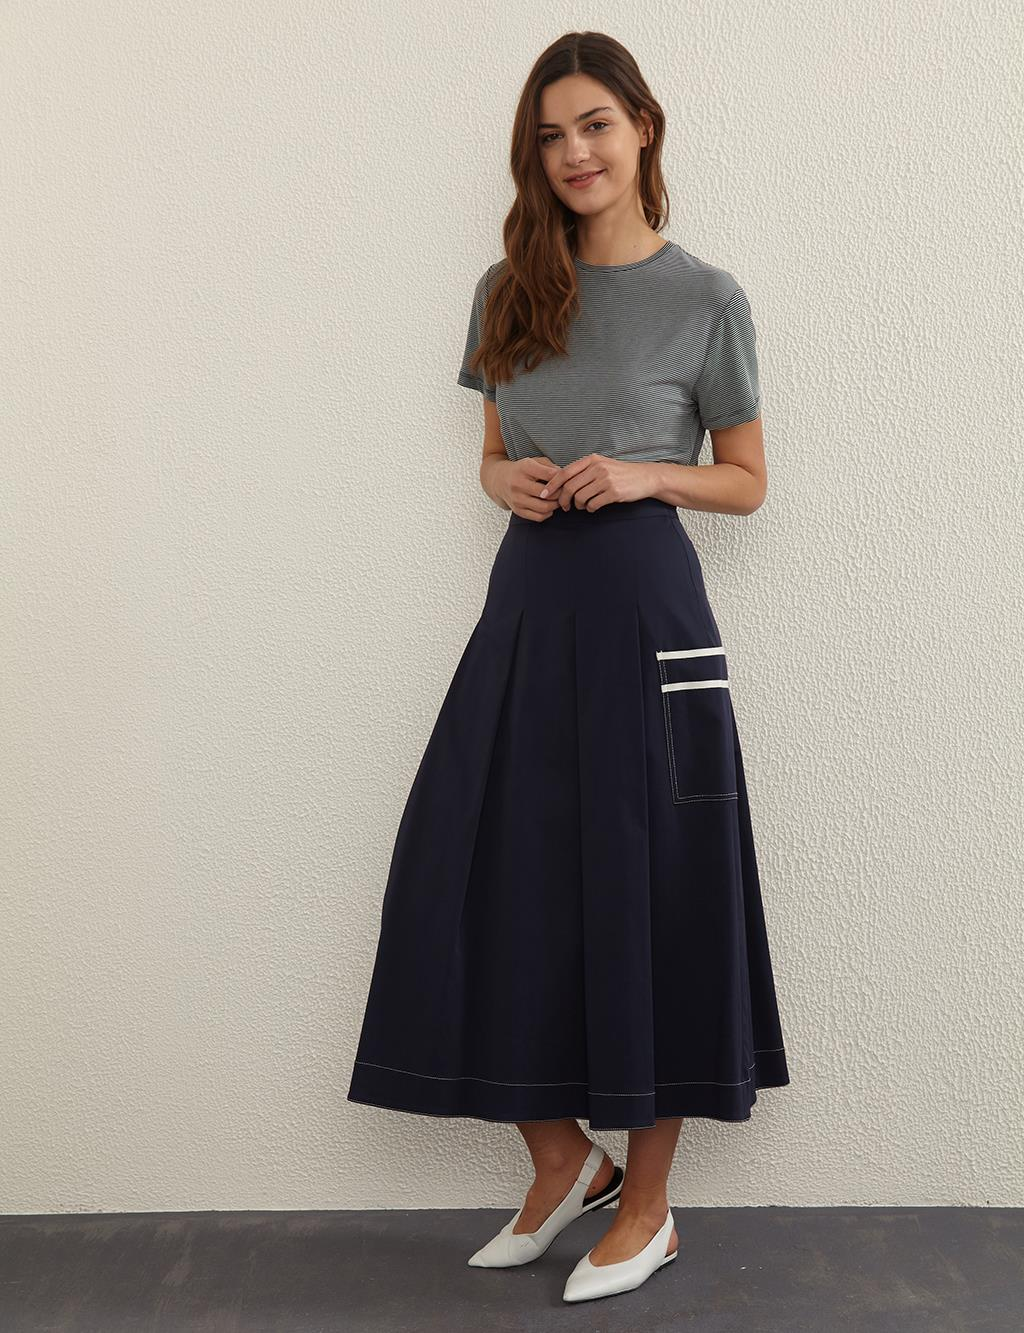 Contrast Stitching Pleated A-line Skirt B21 12010 Navy